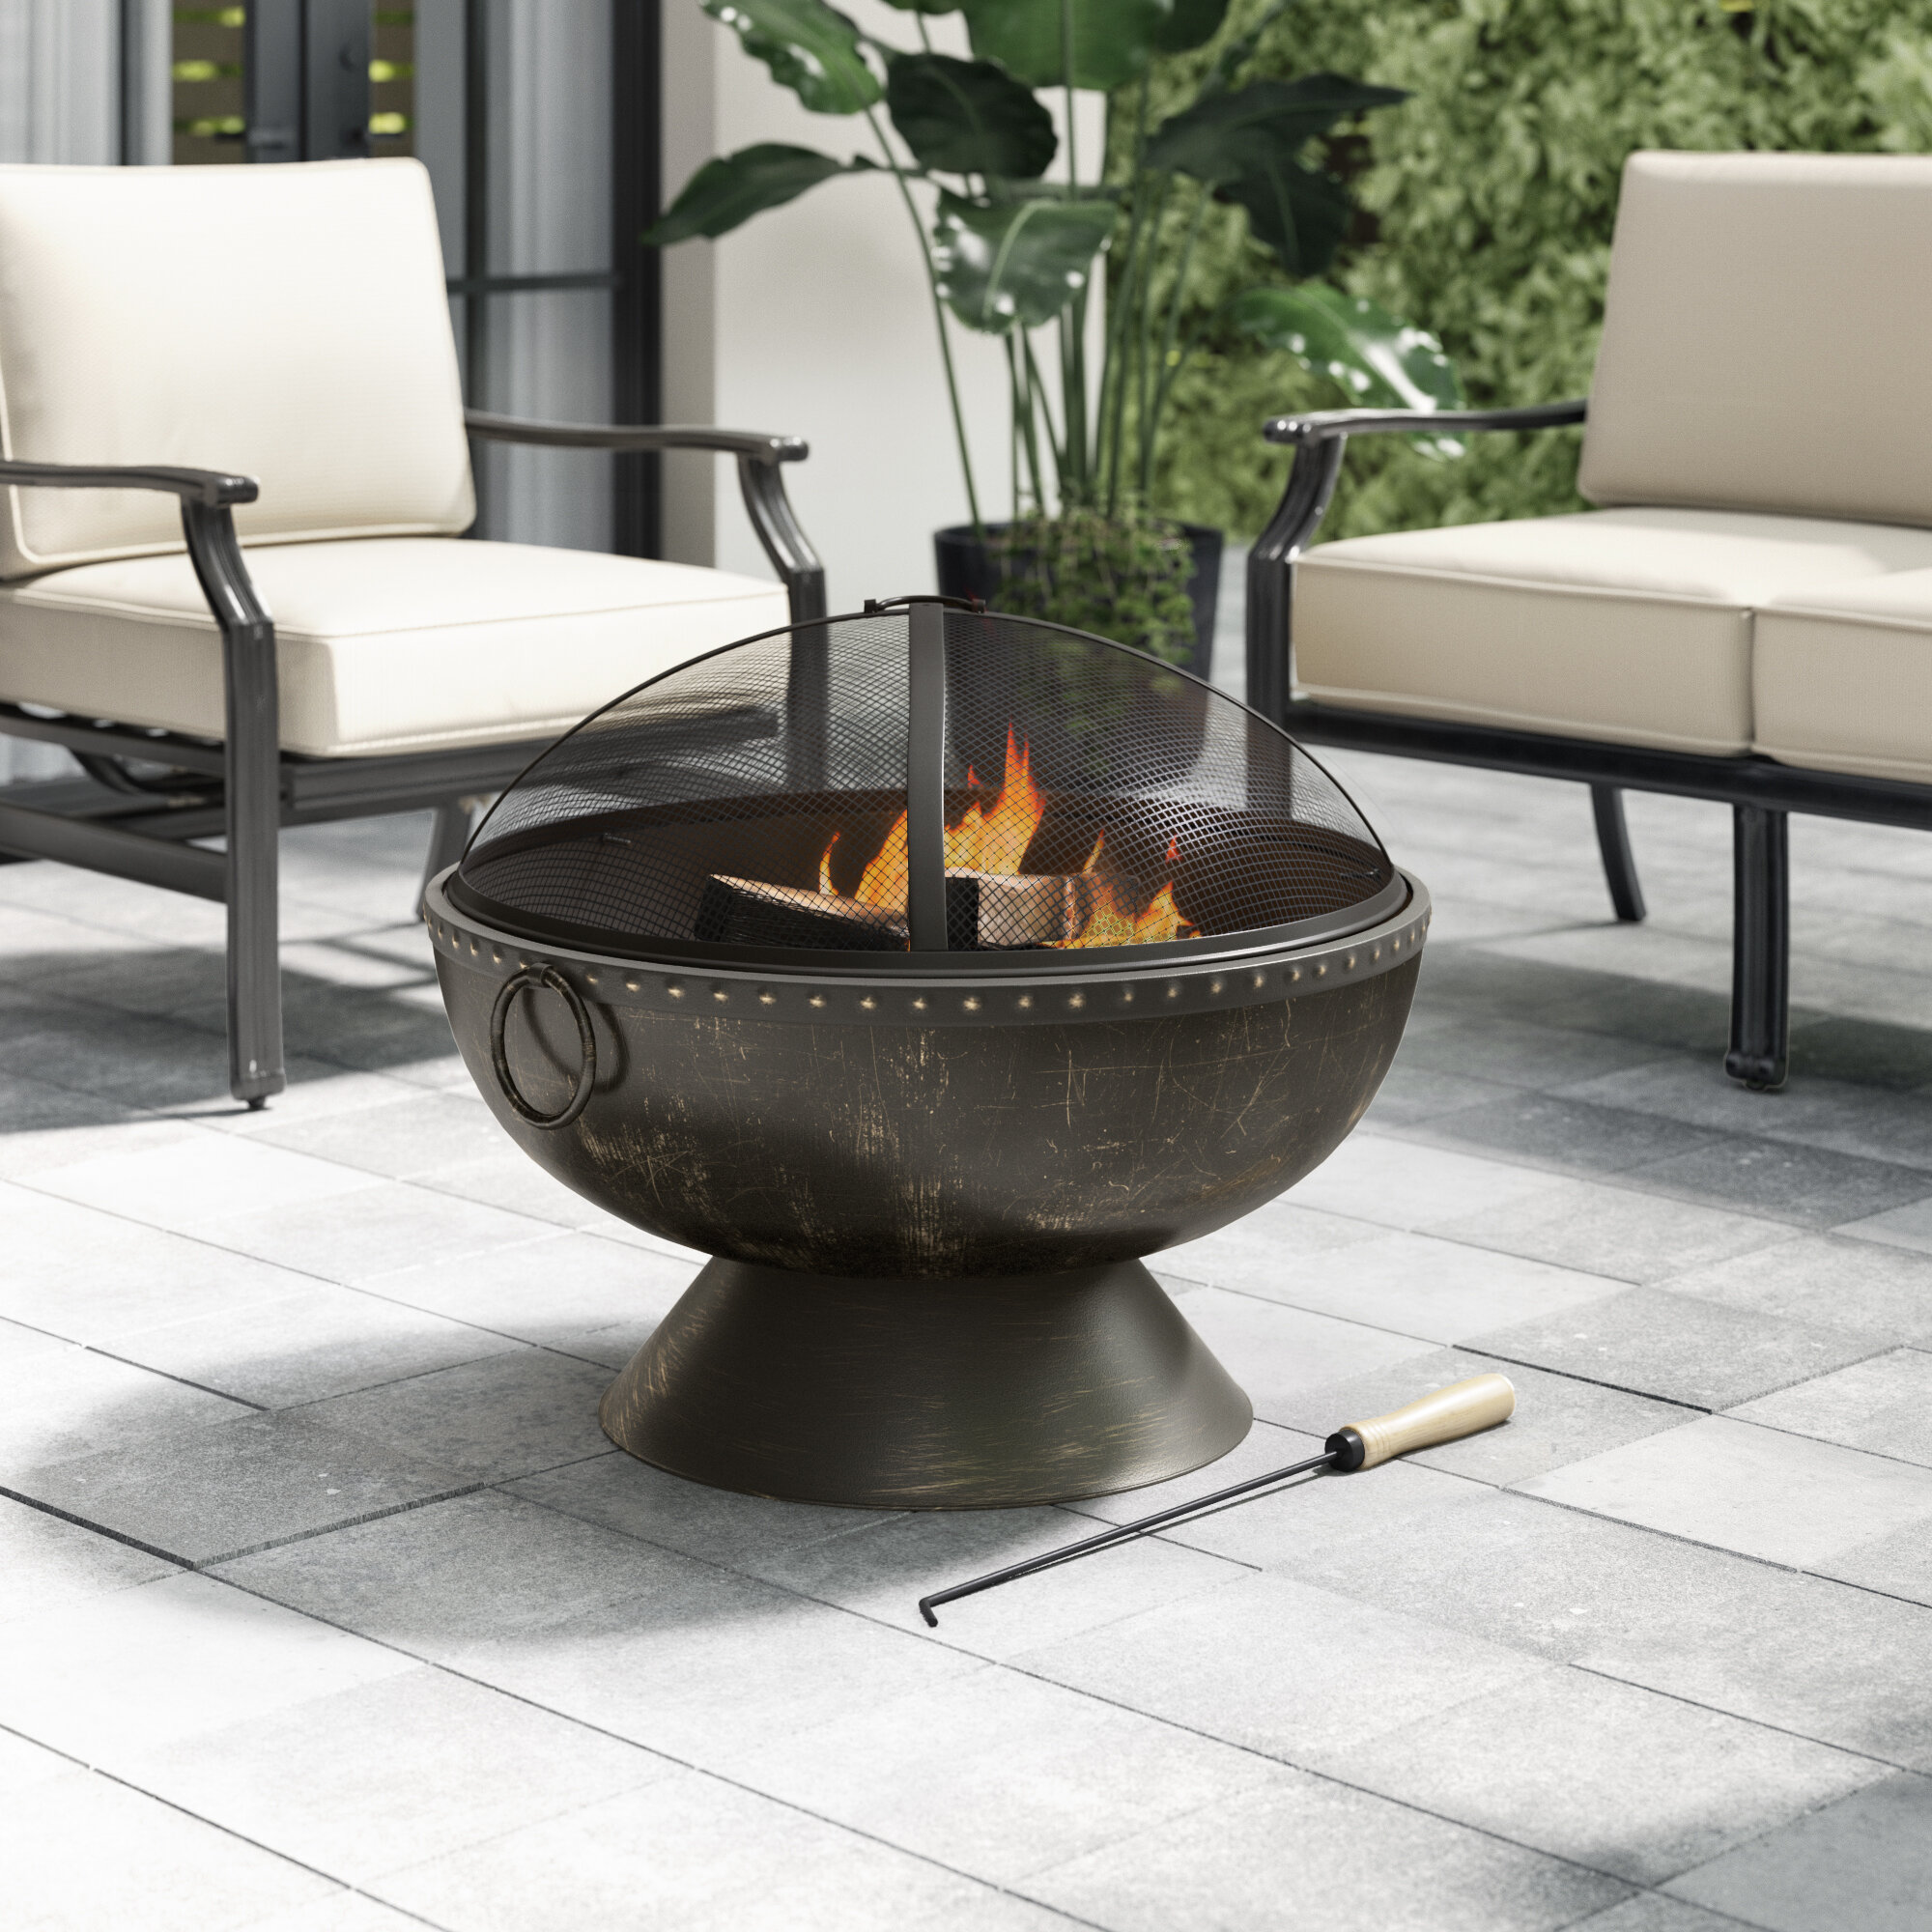 Greyleigh Tuscola Firebowl Steel Wood Burning Fire Pit Reviews Wayfair